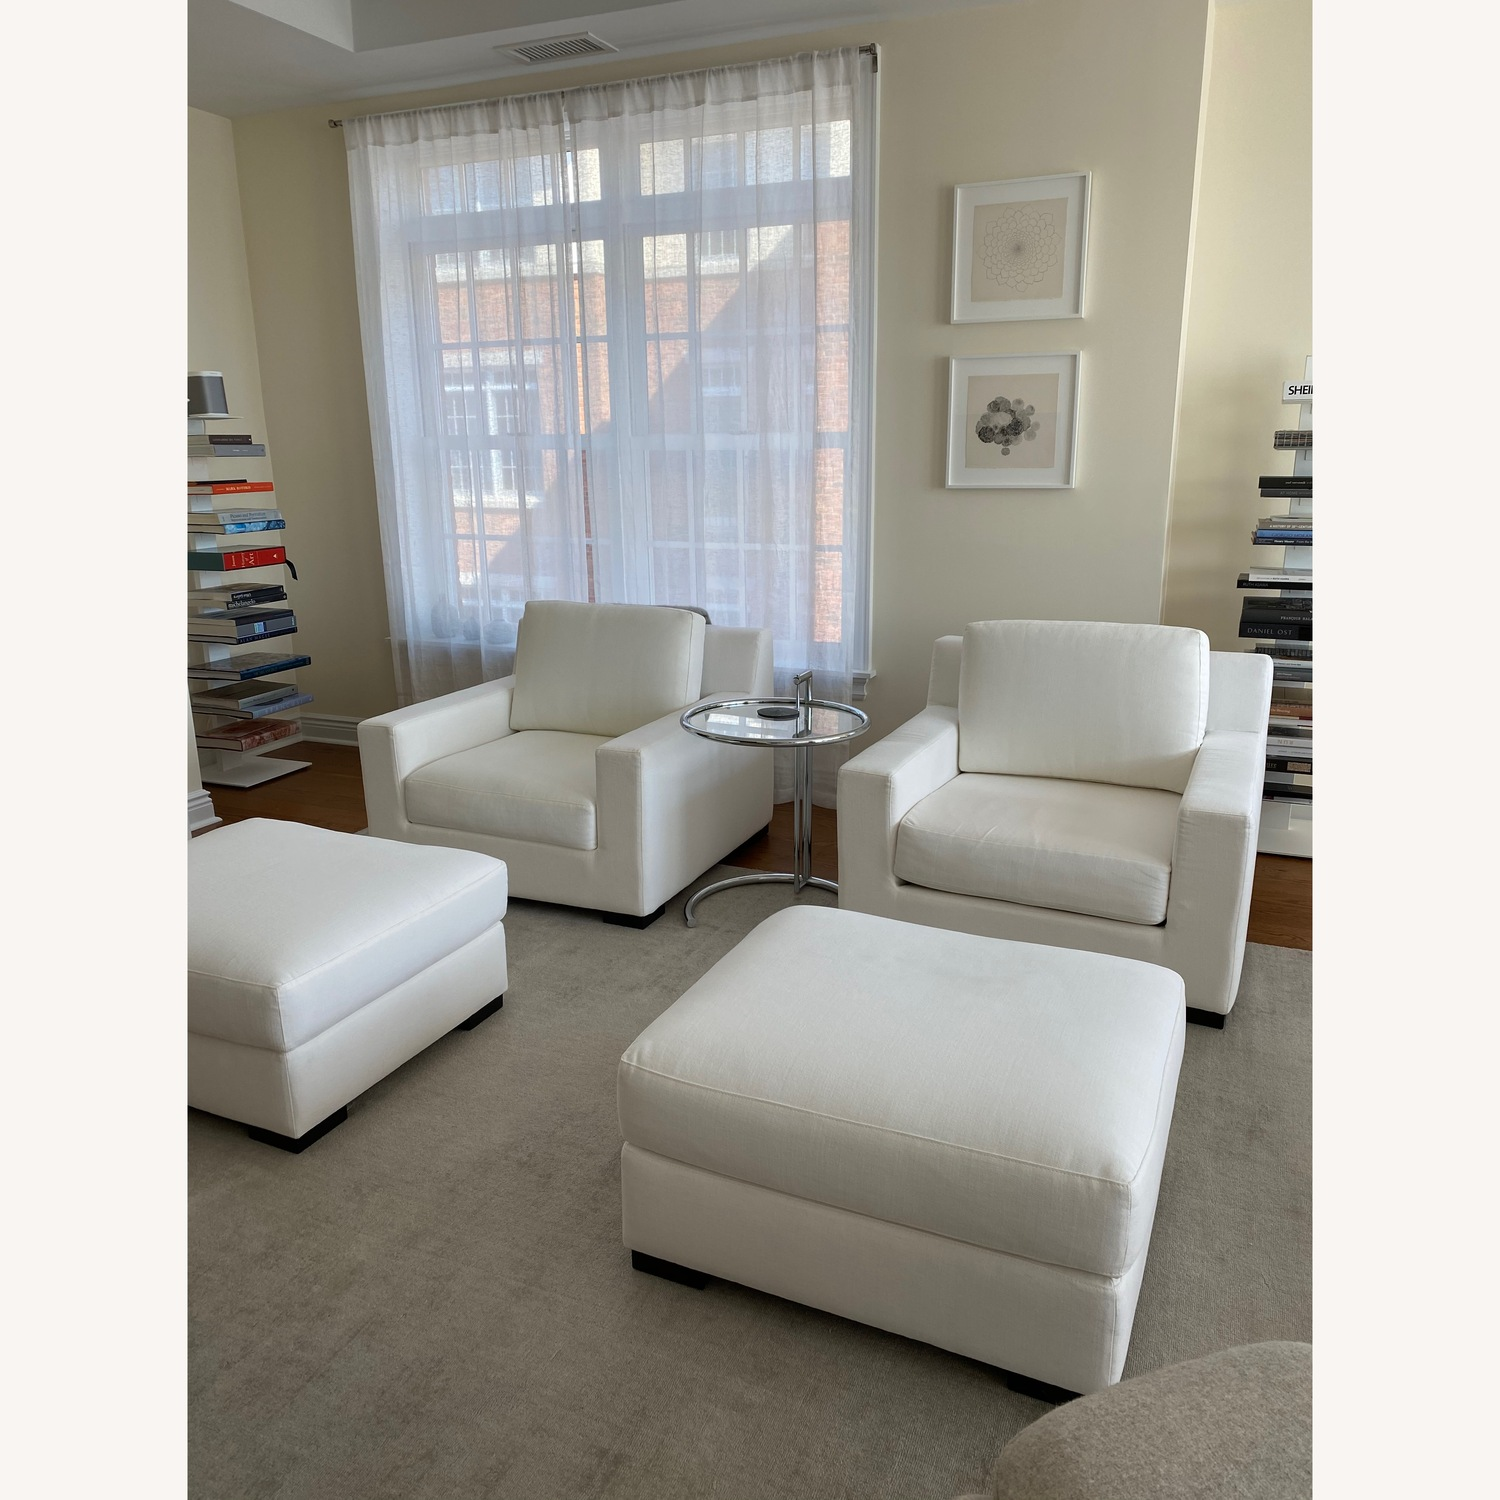 Restoration Hardware Modena Chairs with Ottomans Set - image-3